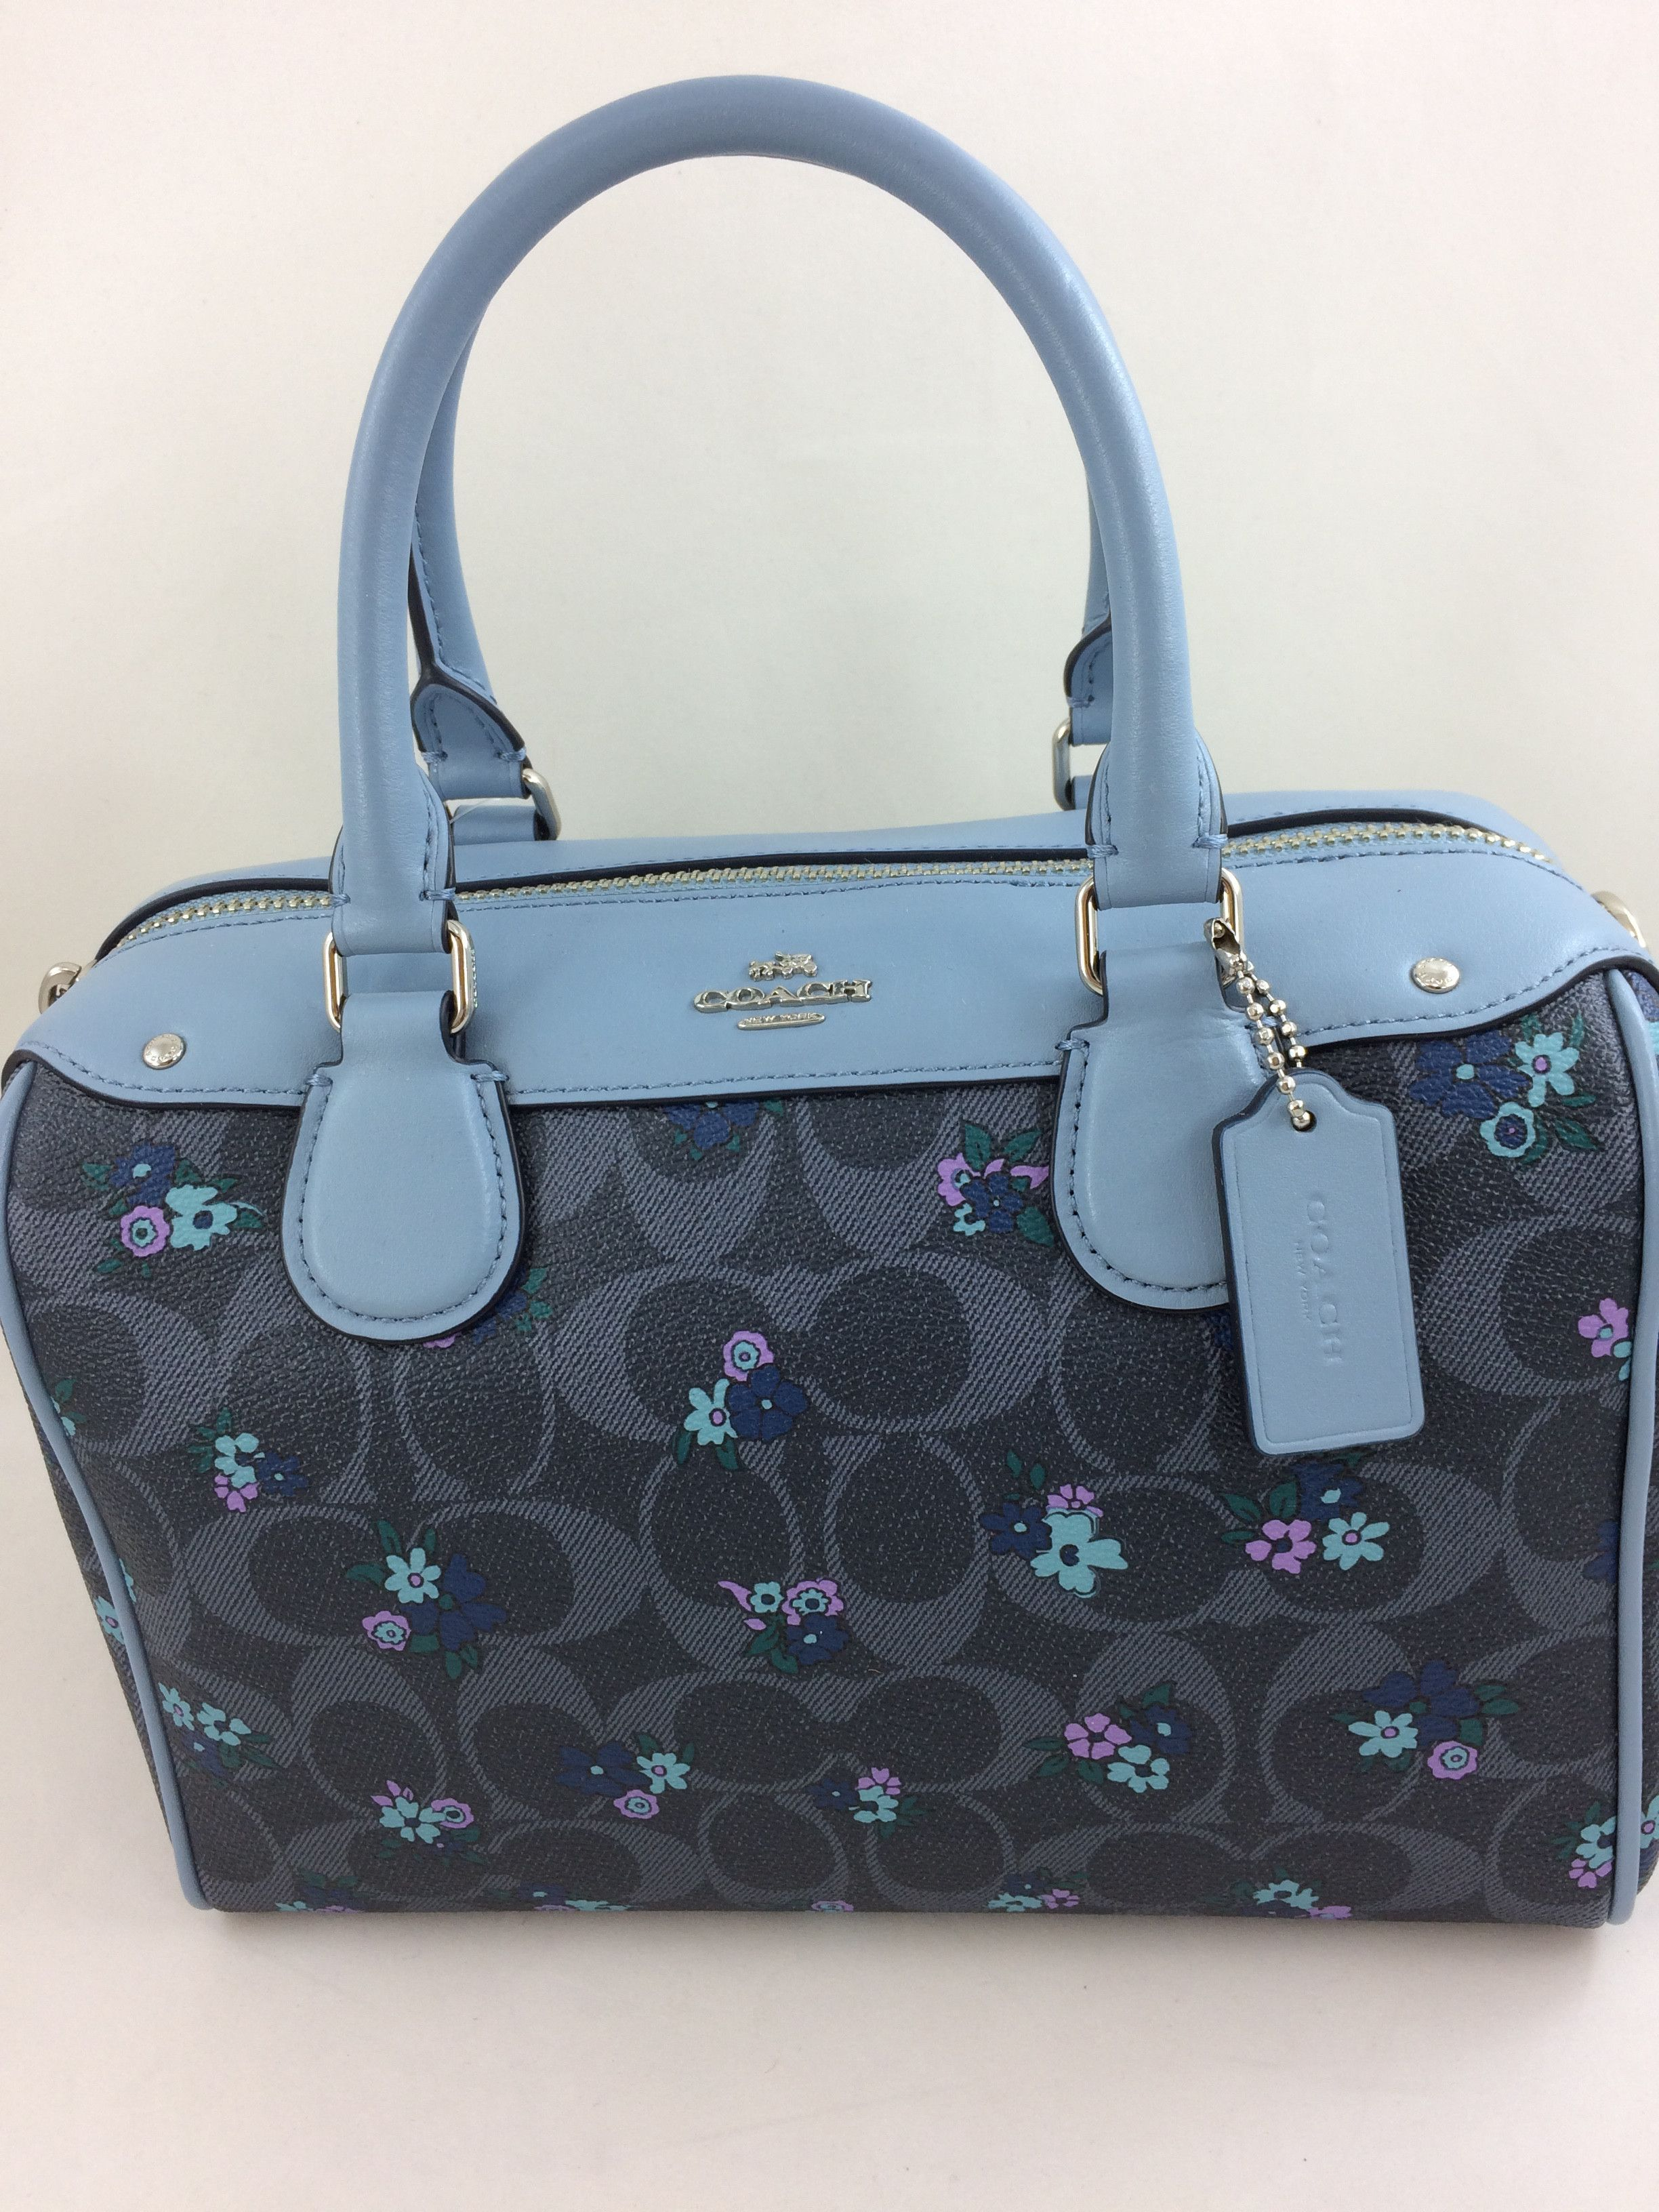 New Authentic Coach F59461 Mini Bennett Satchel Handbag  Shoulder Bag in  Ranch Floral Print Blue Multi 1359bba44385f